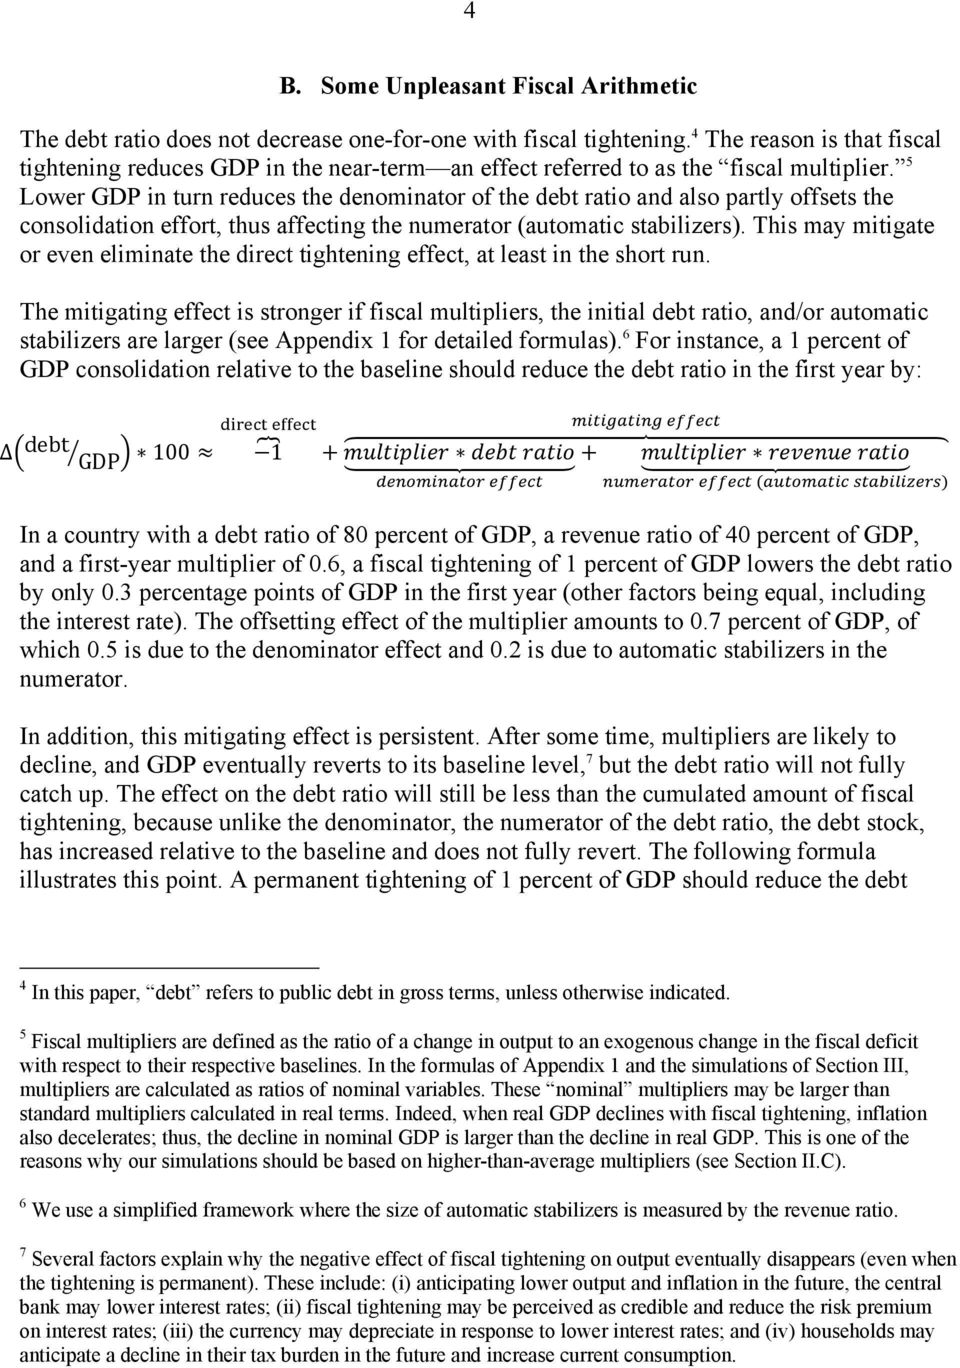 5 Lower GDP in turn reduces the denominator of the debt ratio and also partly offsets the consolidation effort, thus affecting the numerator (automatic stabilizers).